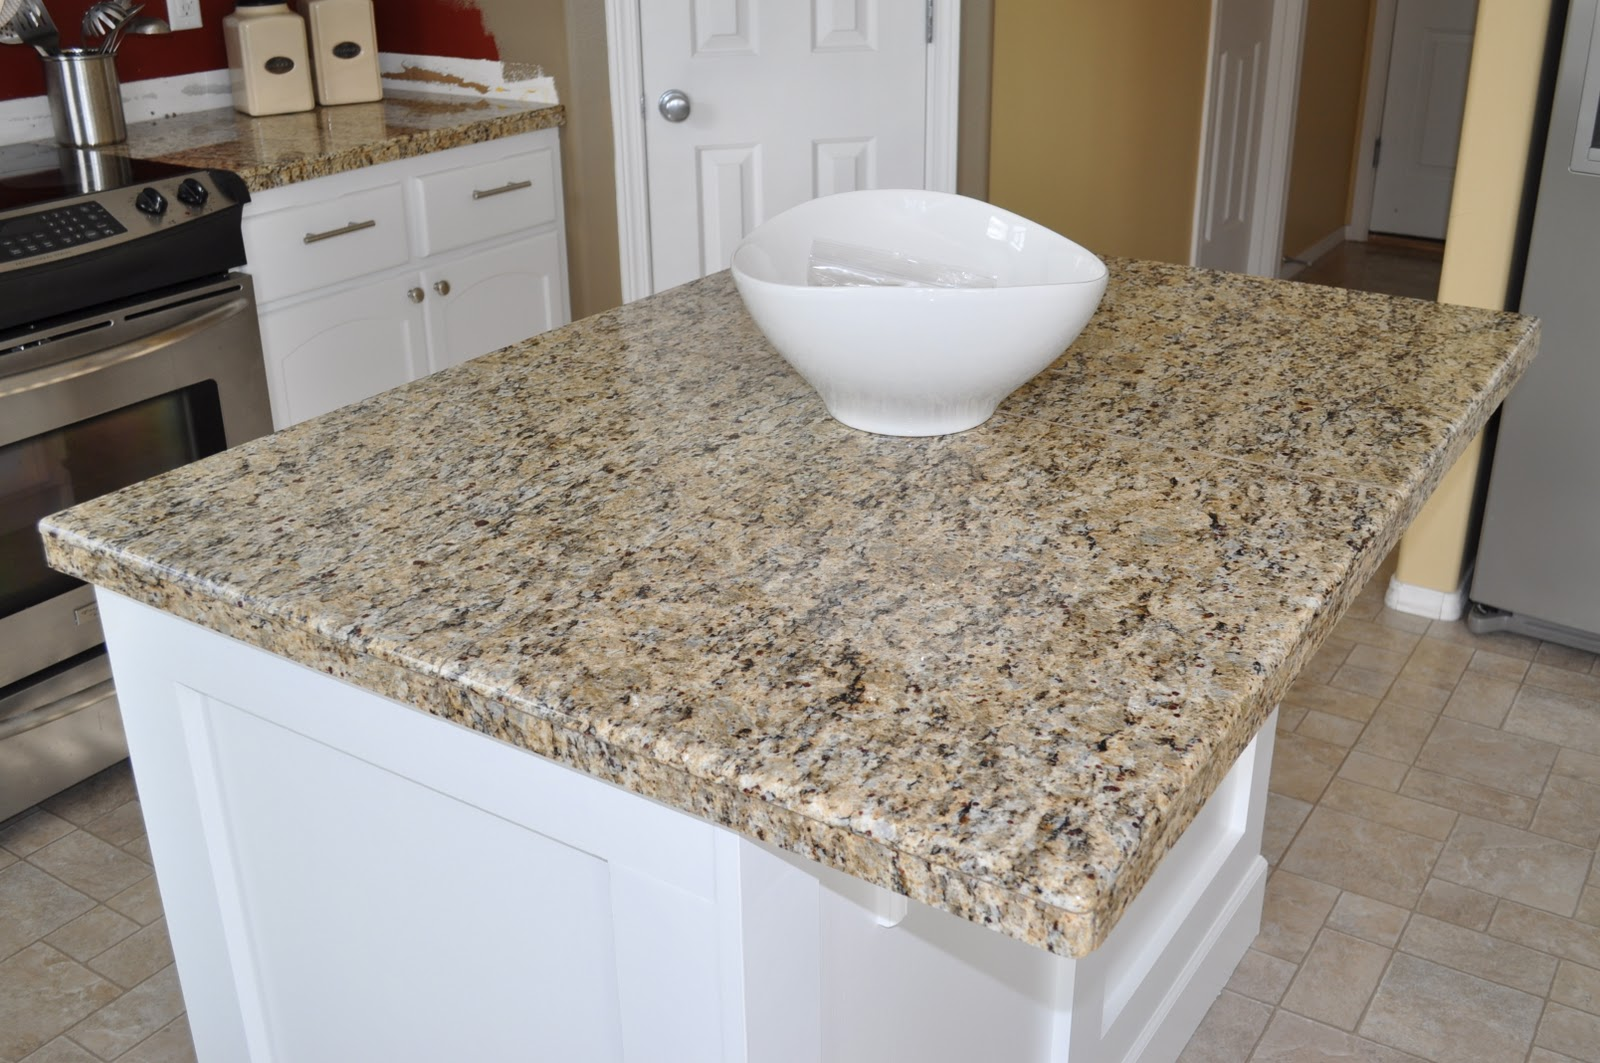 Kitchen Countertop Tiles The Dizzy House Diy Granite Mini Slabs Undermount Sink